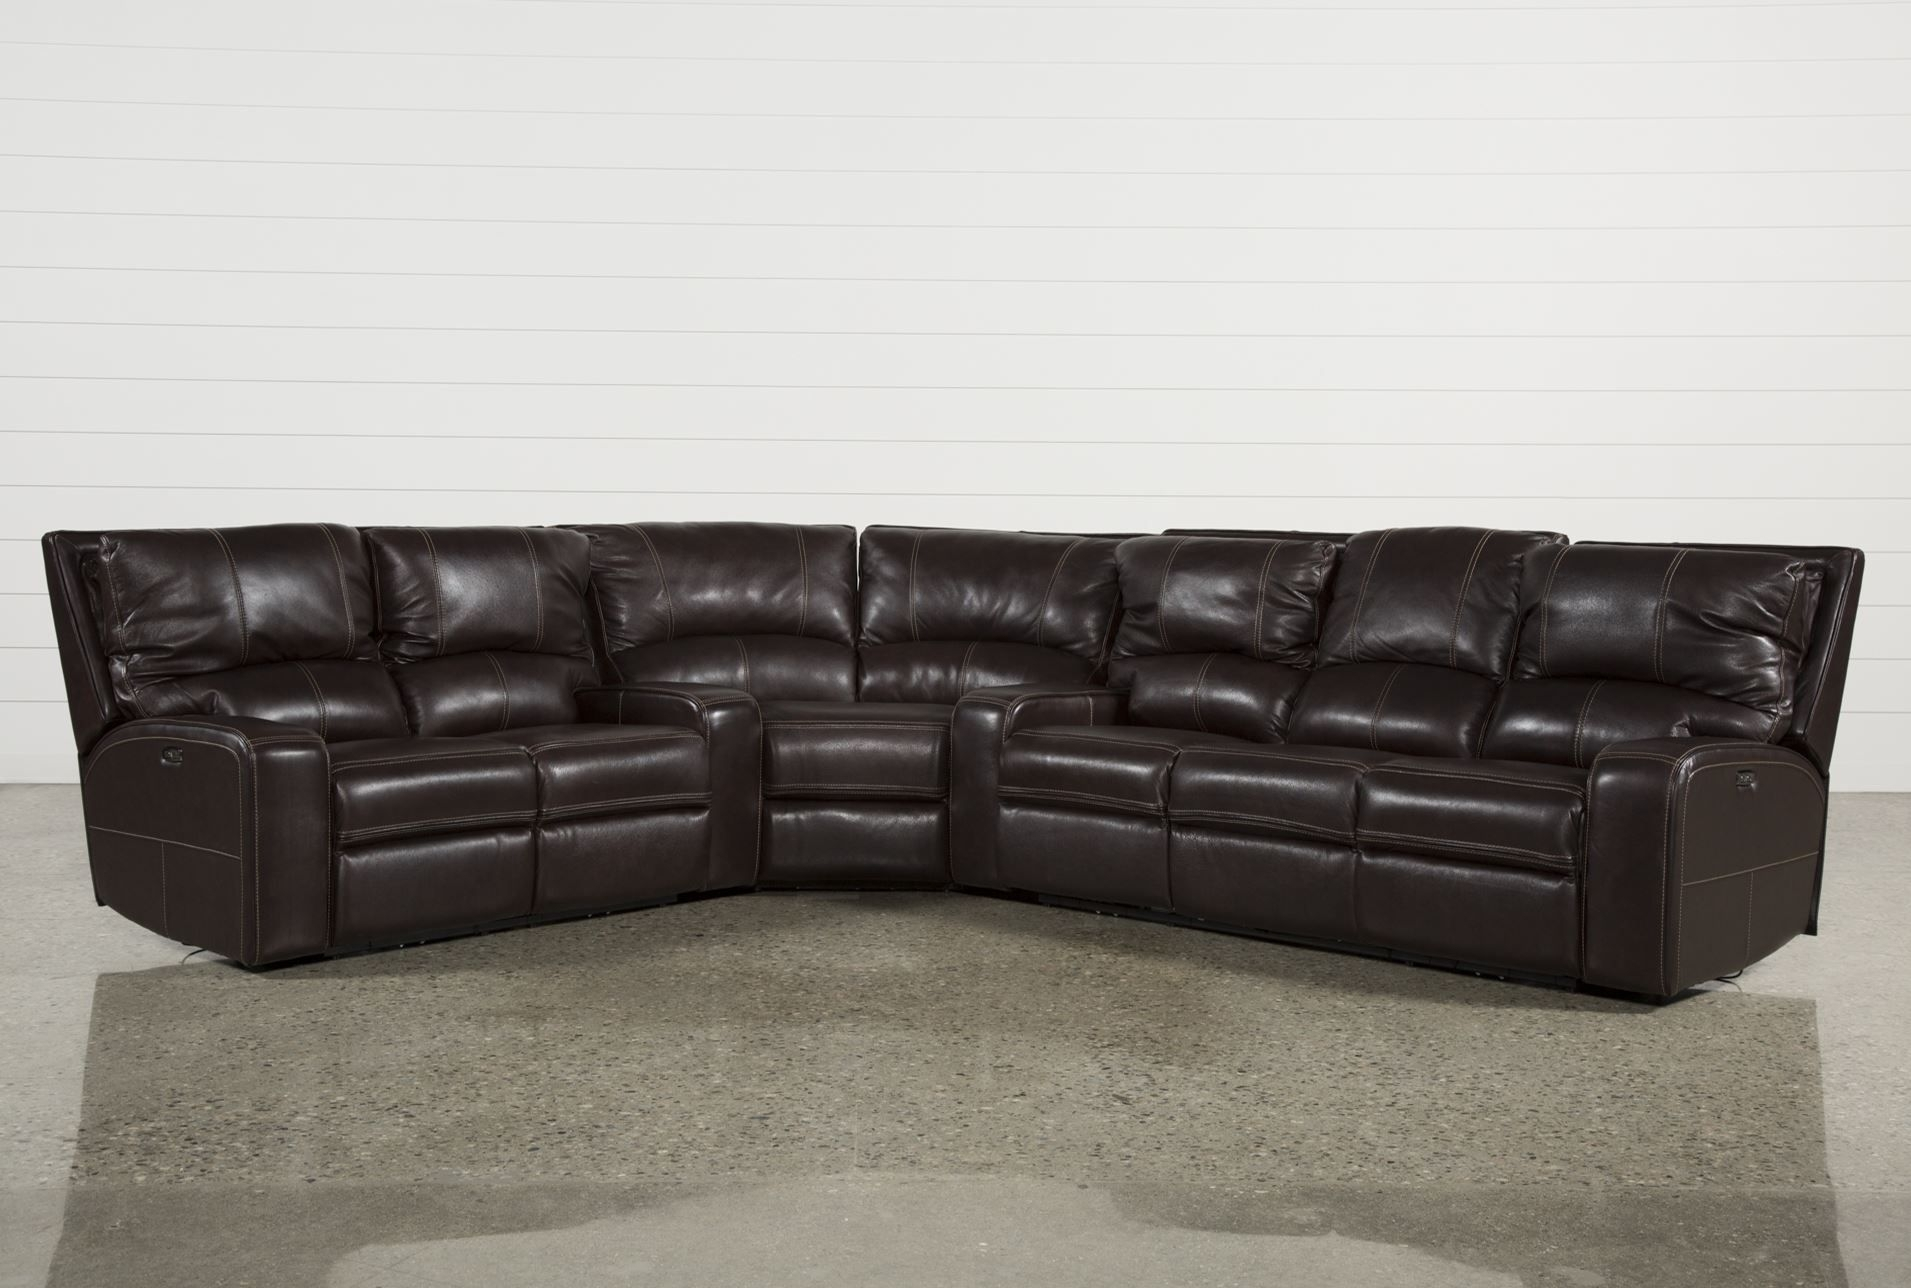 Clyde Dark Brown 3 Piece Power Reclining Sectional W/pwr Hdt & Usb pertaining to Norfolk Grey 3 Piece Sectionals With Laf Chaise (Image 5 of 30)